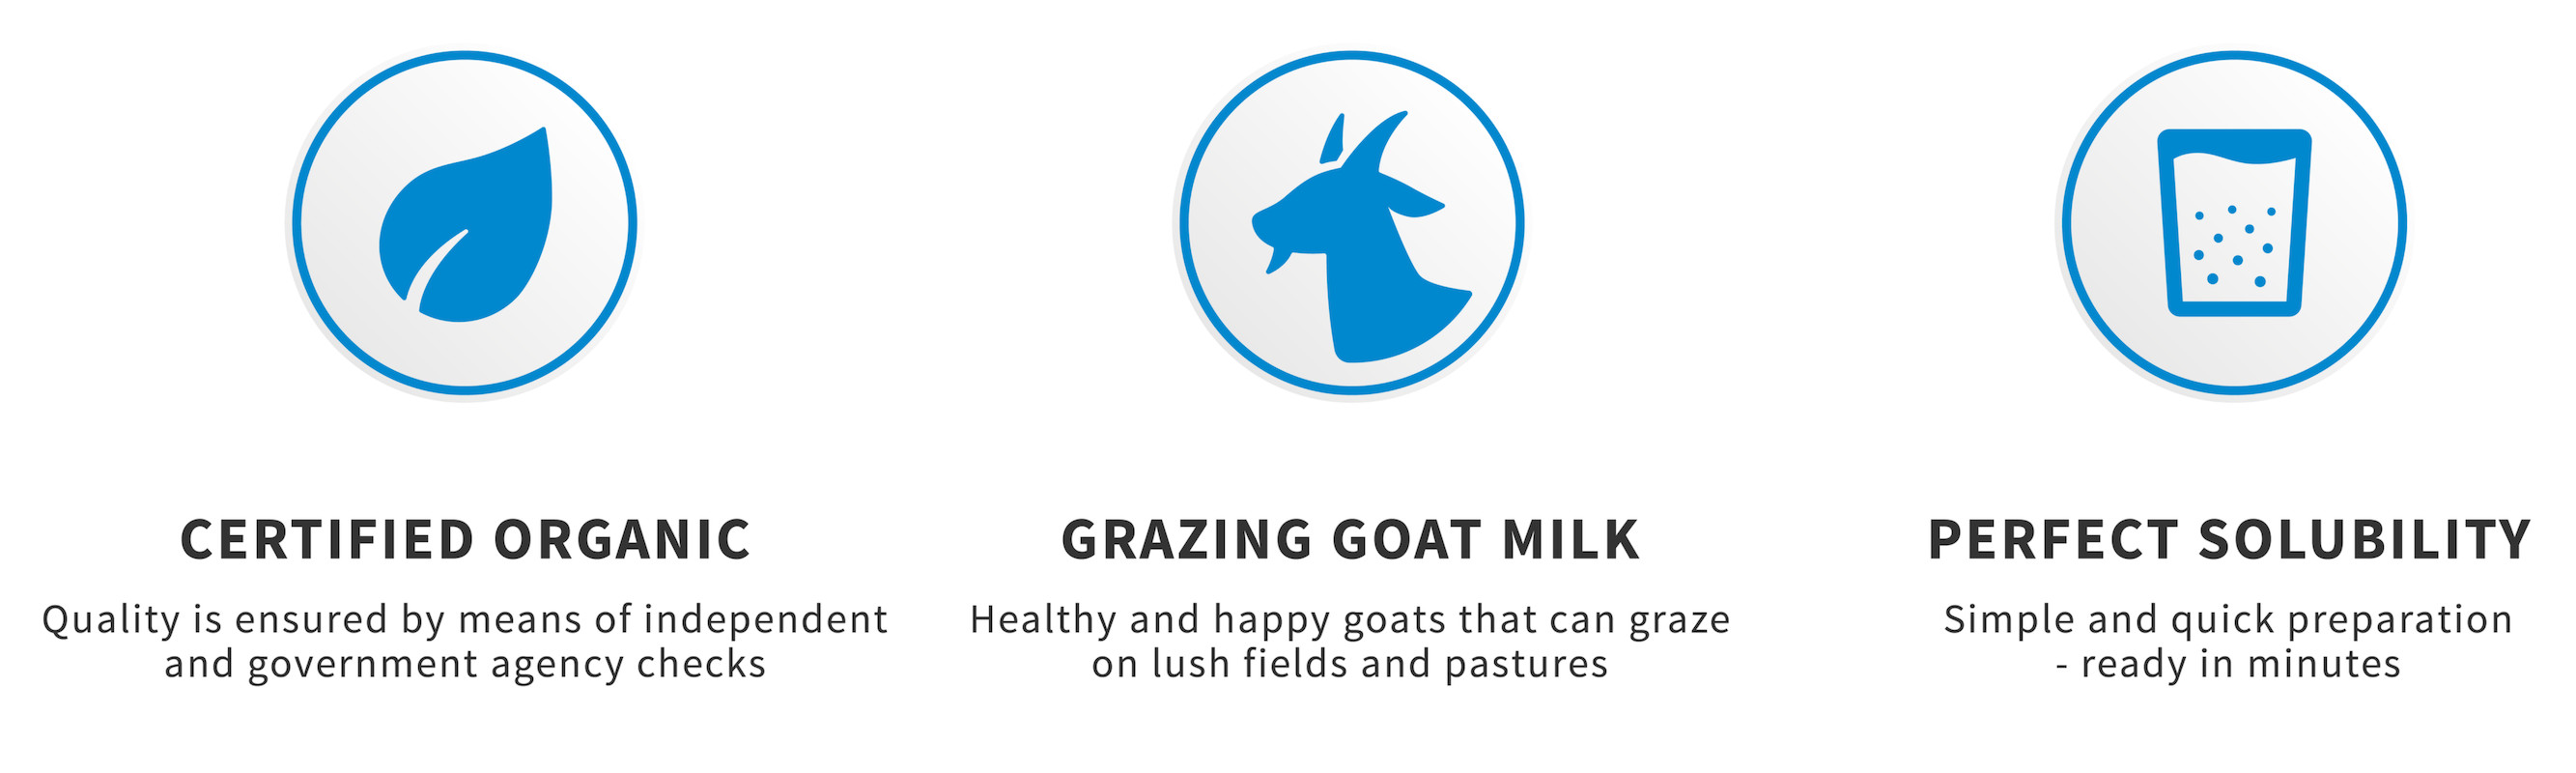 organic-baby-formula-from-europe-goat